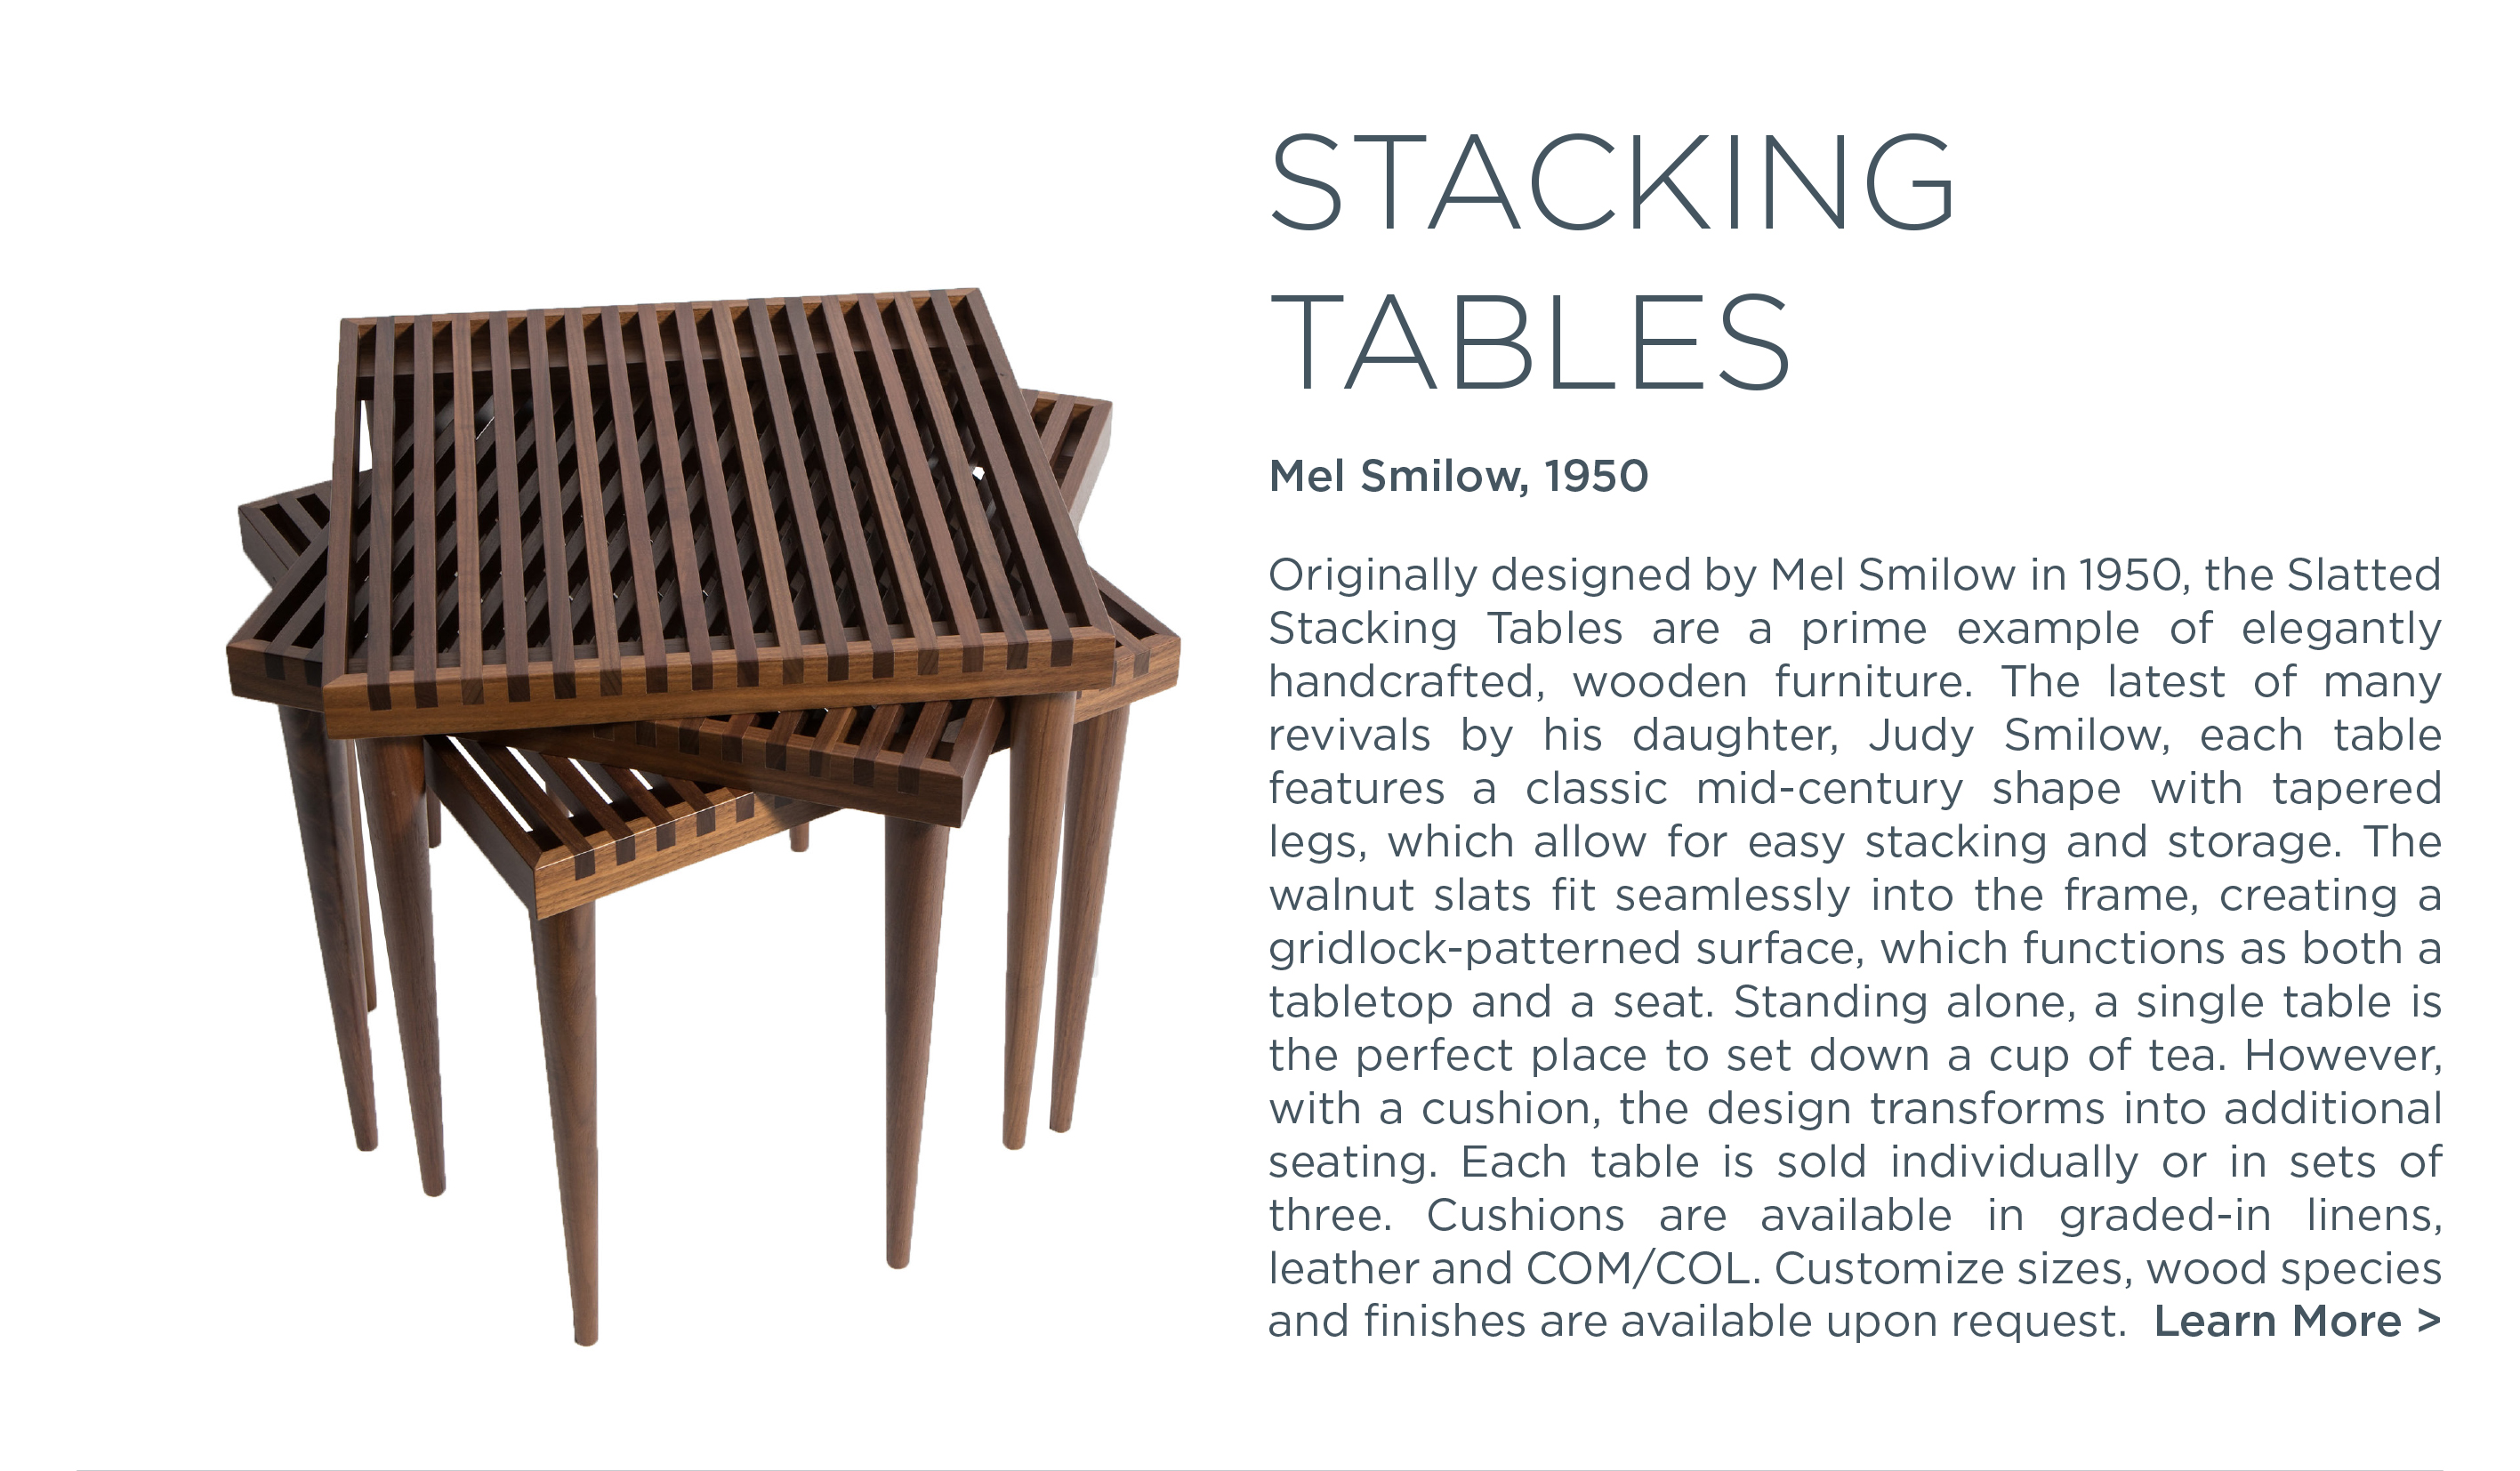 1 slatted stacking tables mel smilow suite ny